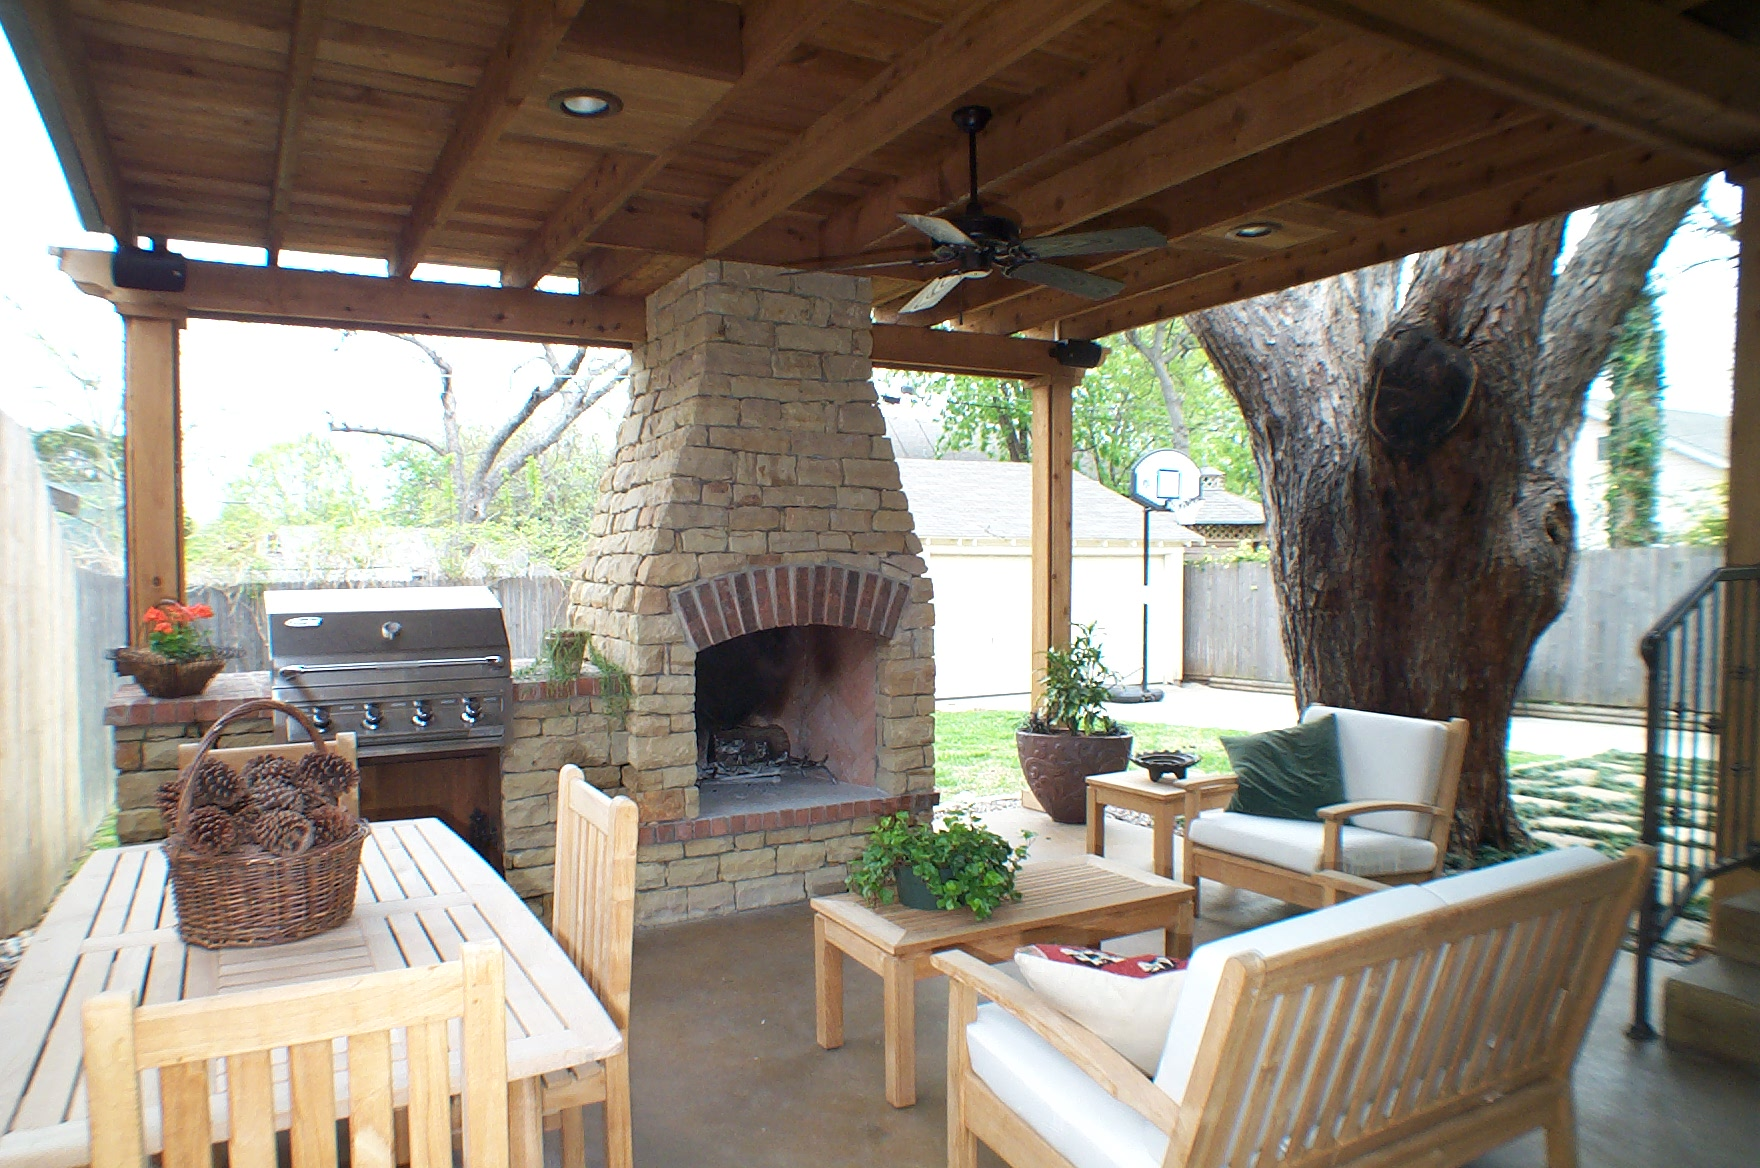 Outdoor Living Design | Fort Worth, TX |Sunrooms, Outdoor ... - photo#23